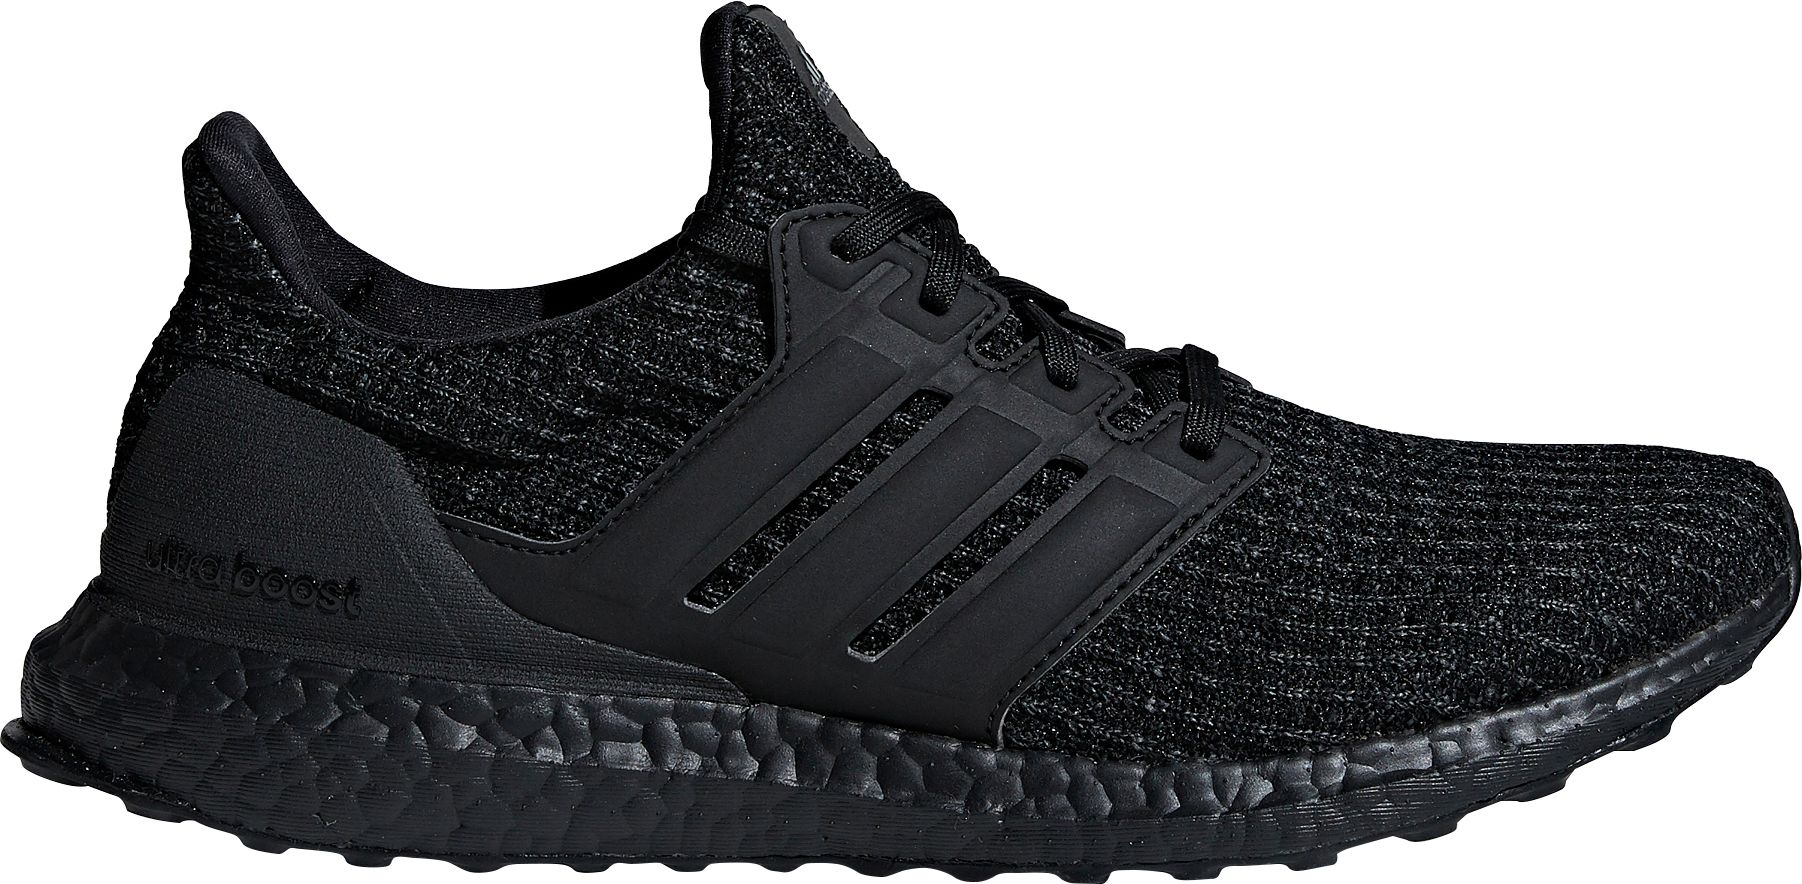 609f1521a709d adidas Men s Ultra Boost Running Shoes in 2019